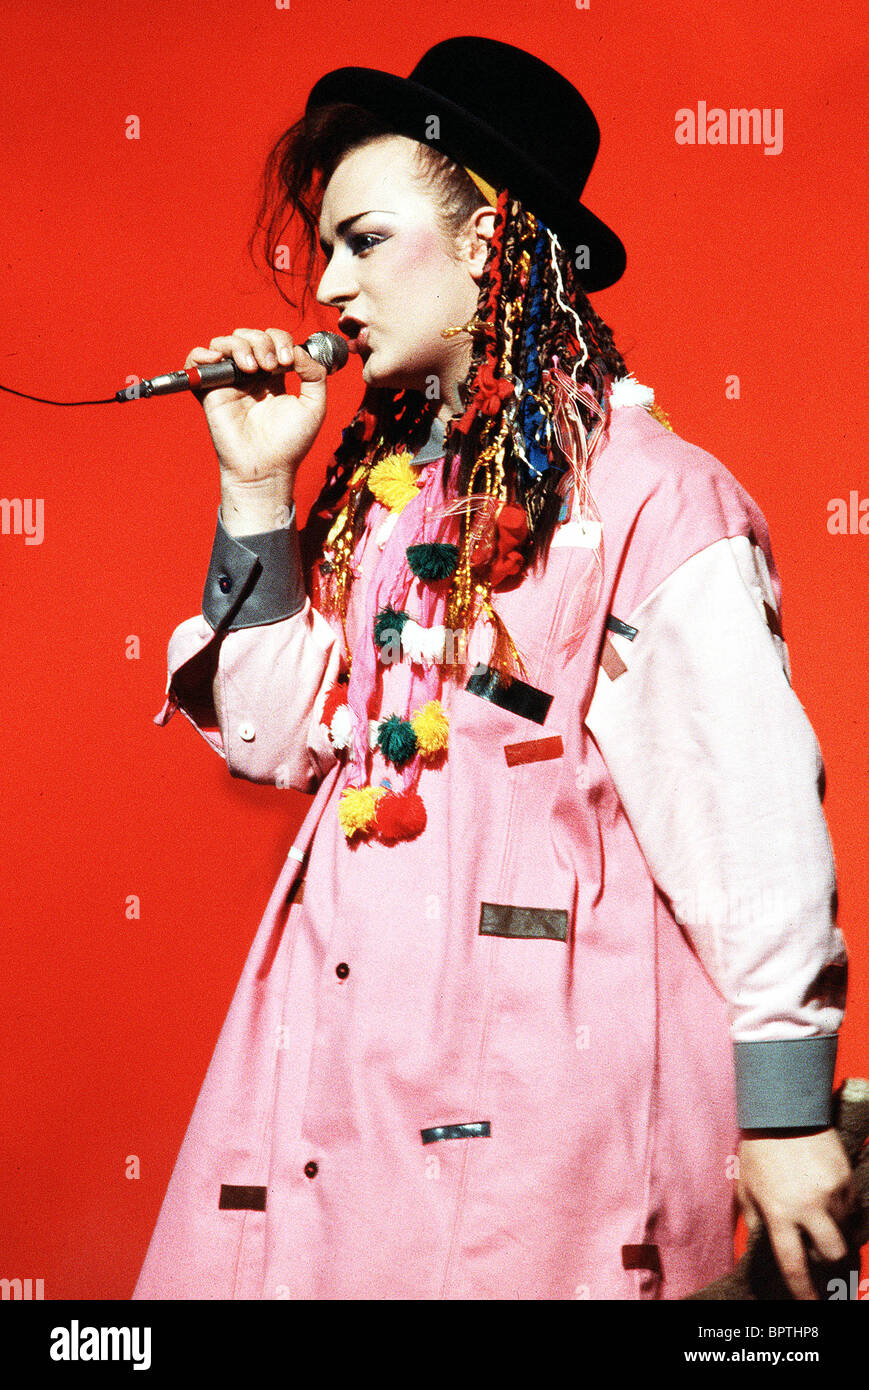 Boy george culture club photos At e Best Of Boy George And Culture Club by Boy